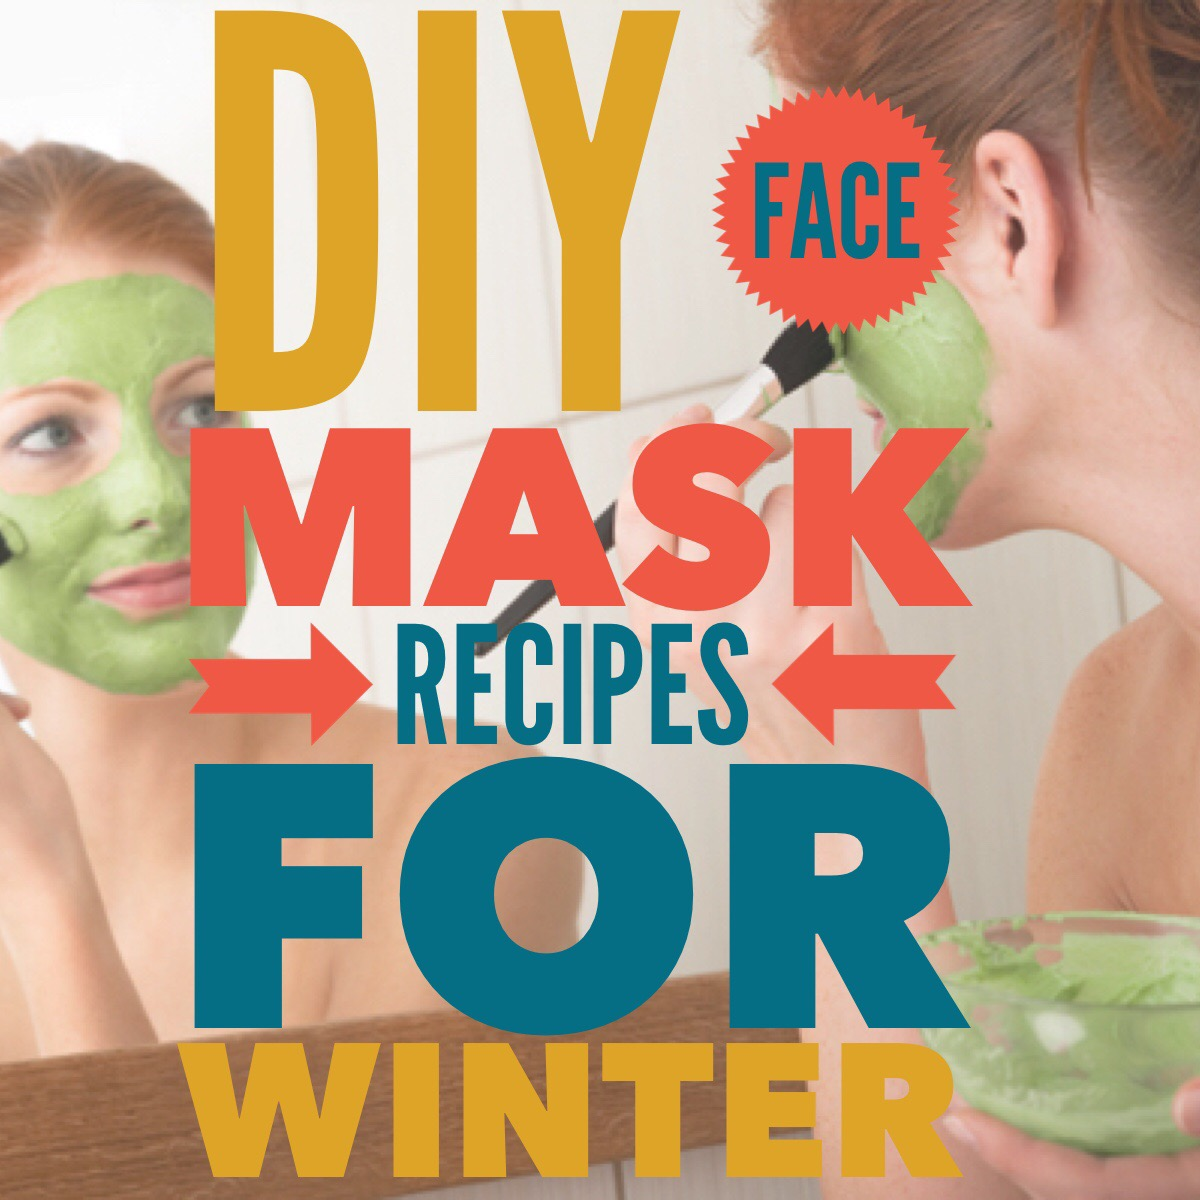 DIY At Home Face Mask Recipes for the Winter #beautybuzz